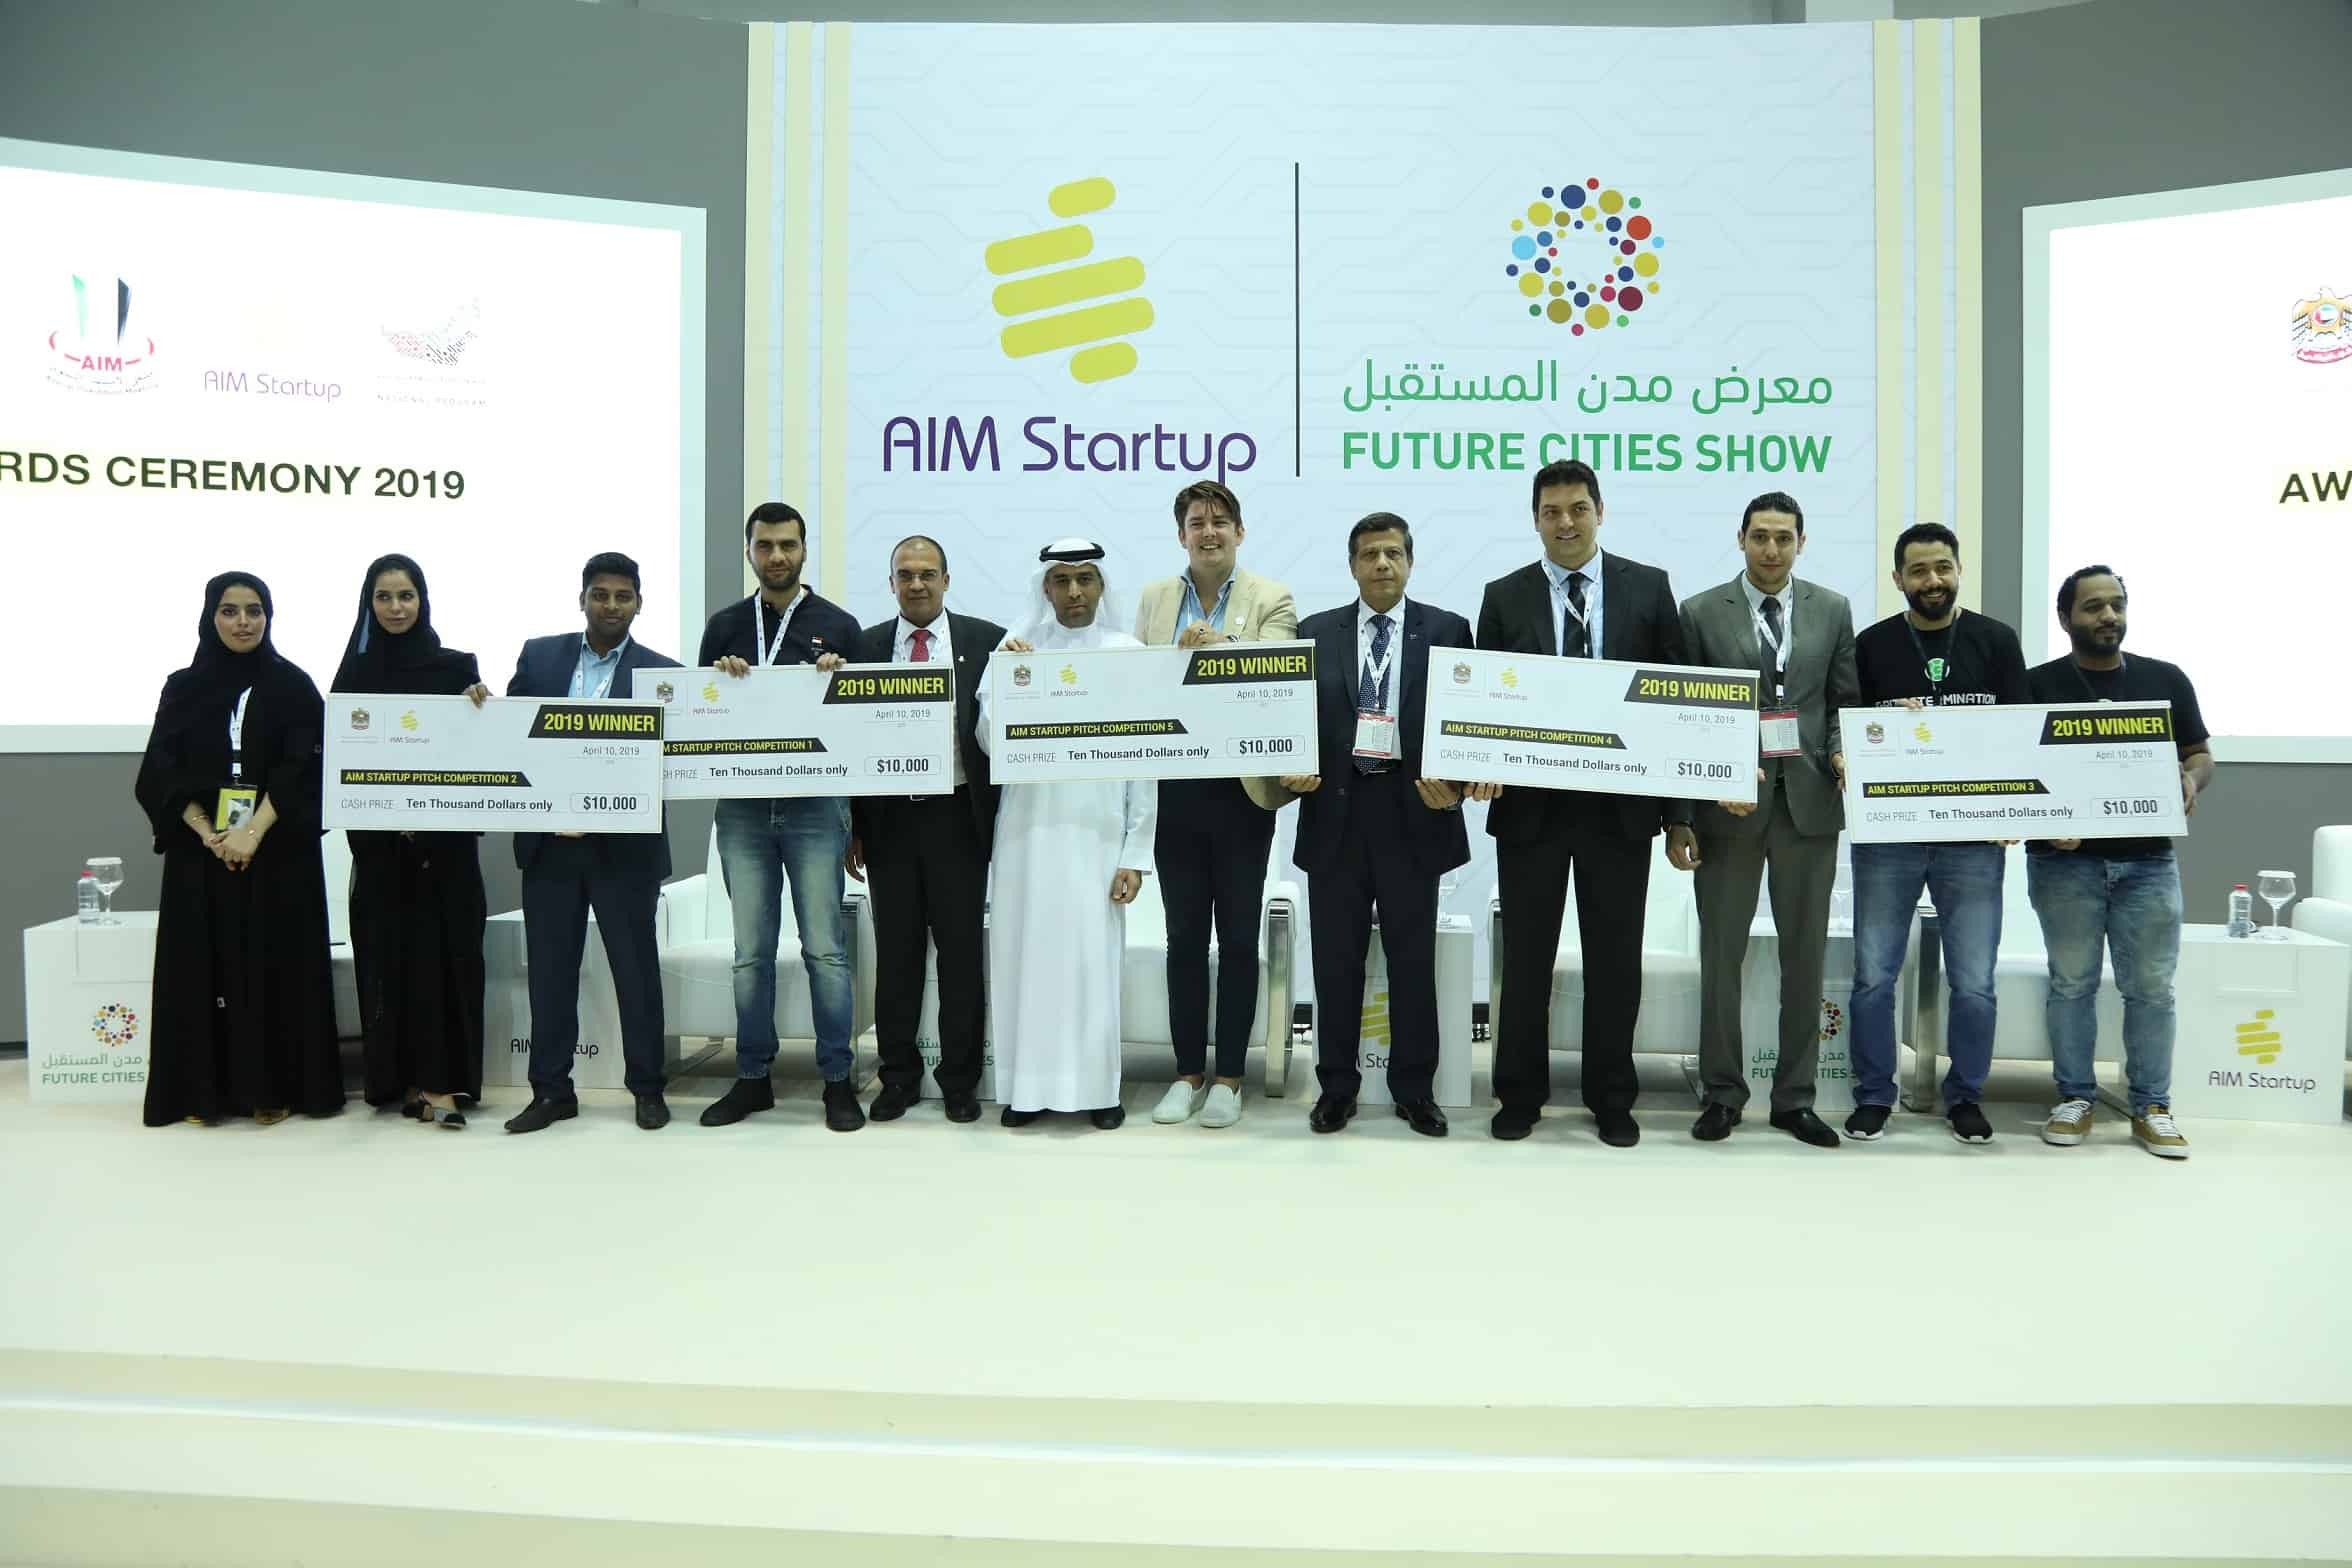 AIM startups 3rd edition Winner